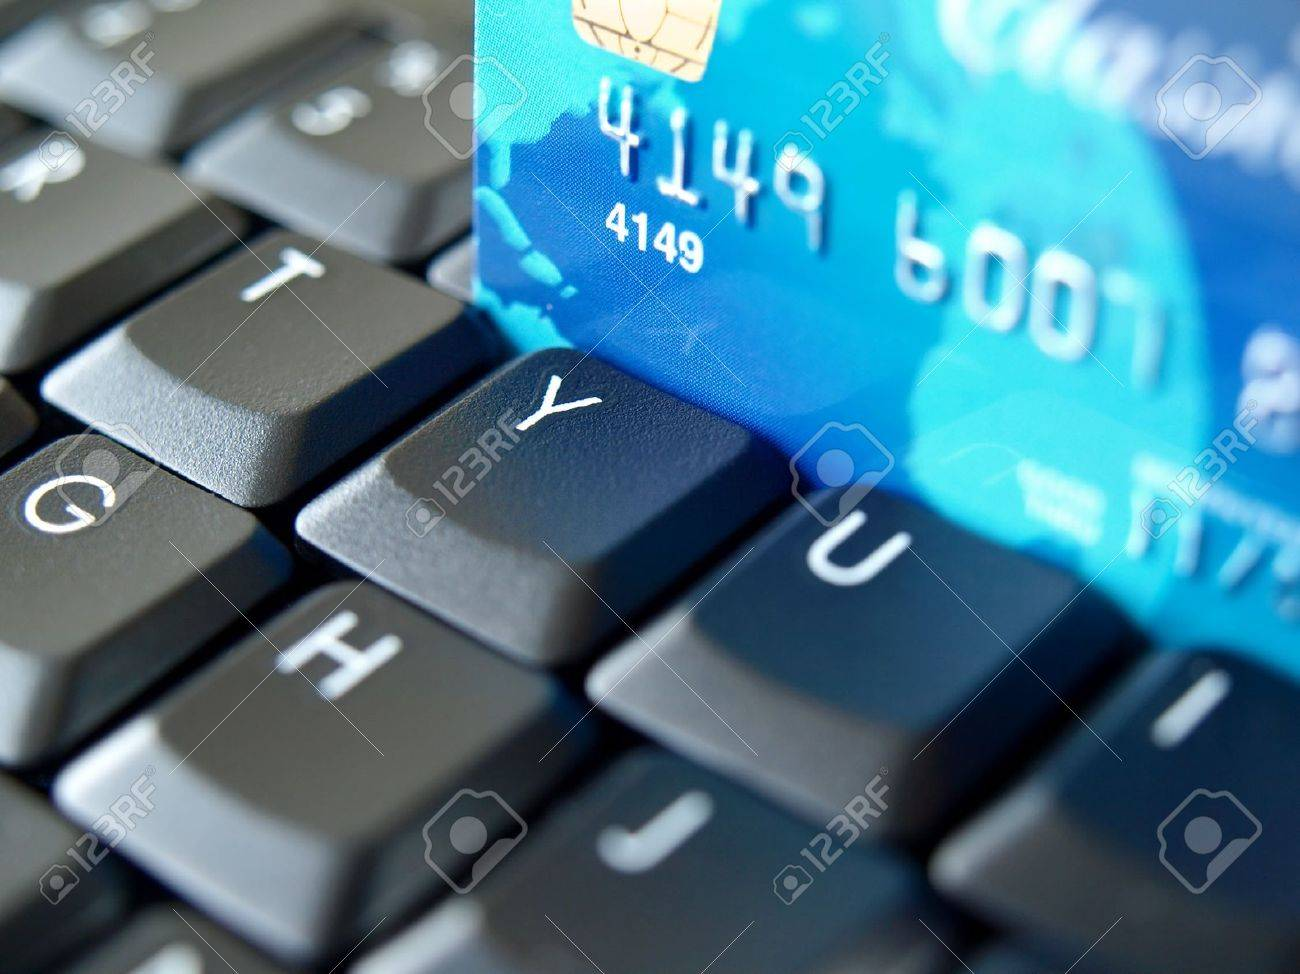 Credit card on computer keyboard. Stock Photo - 9293890